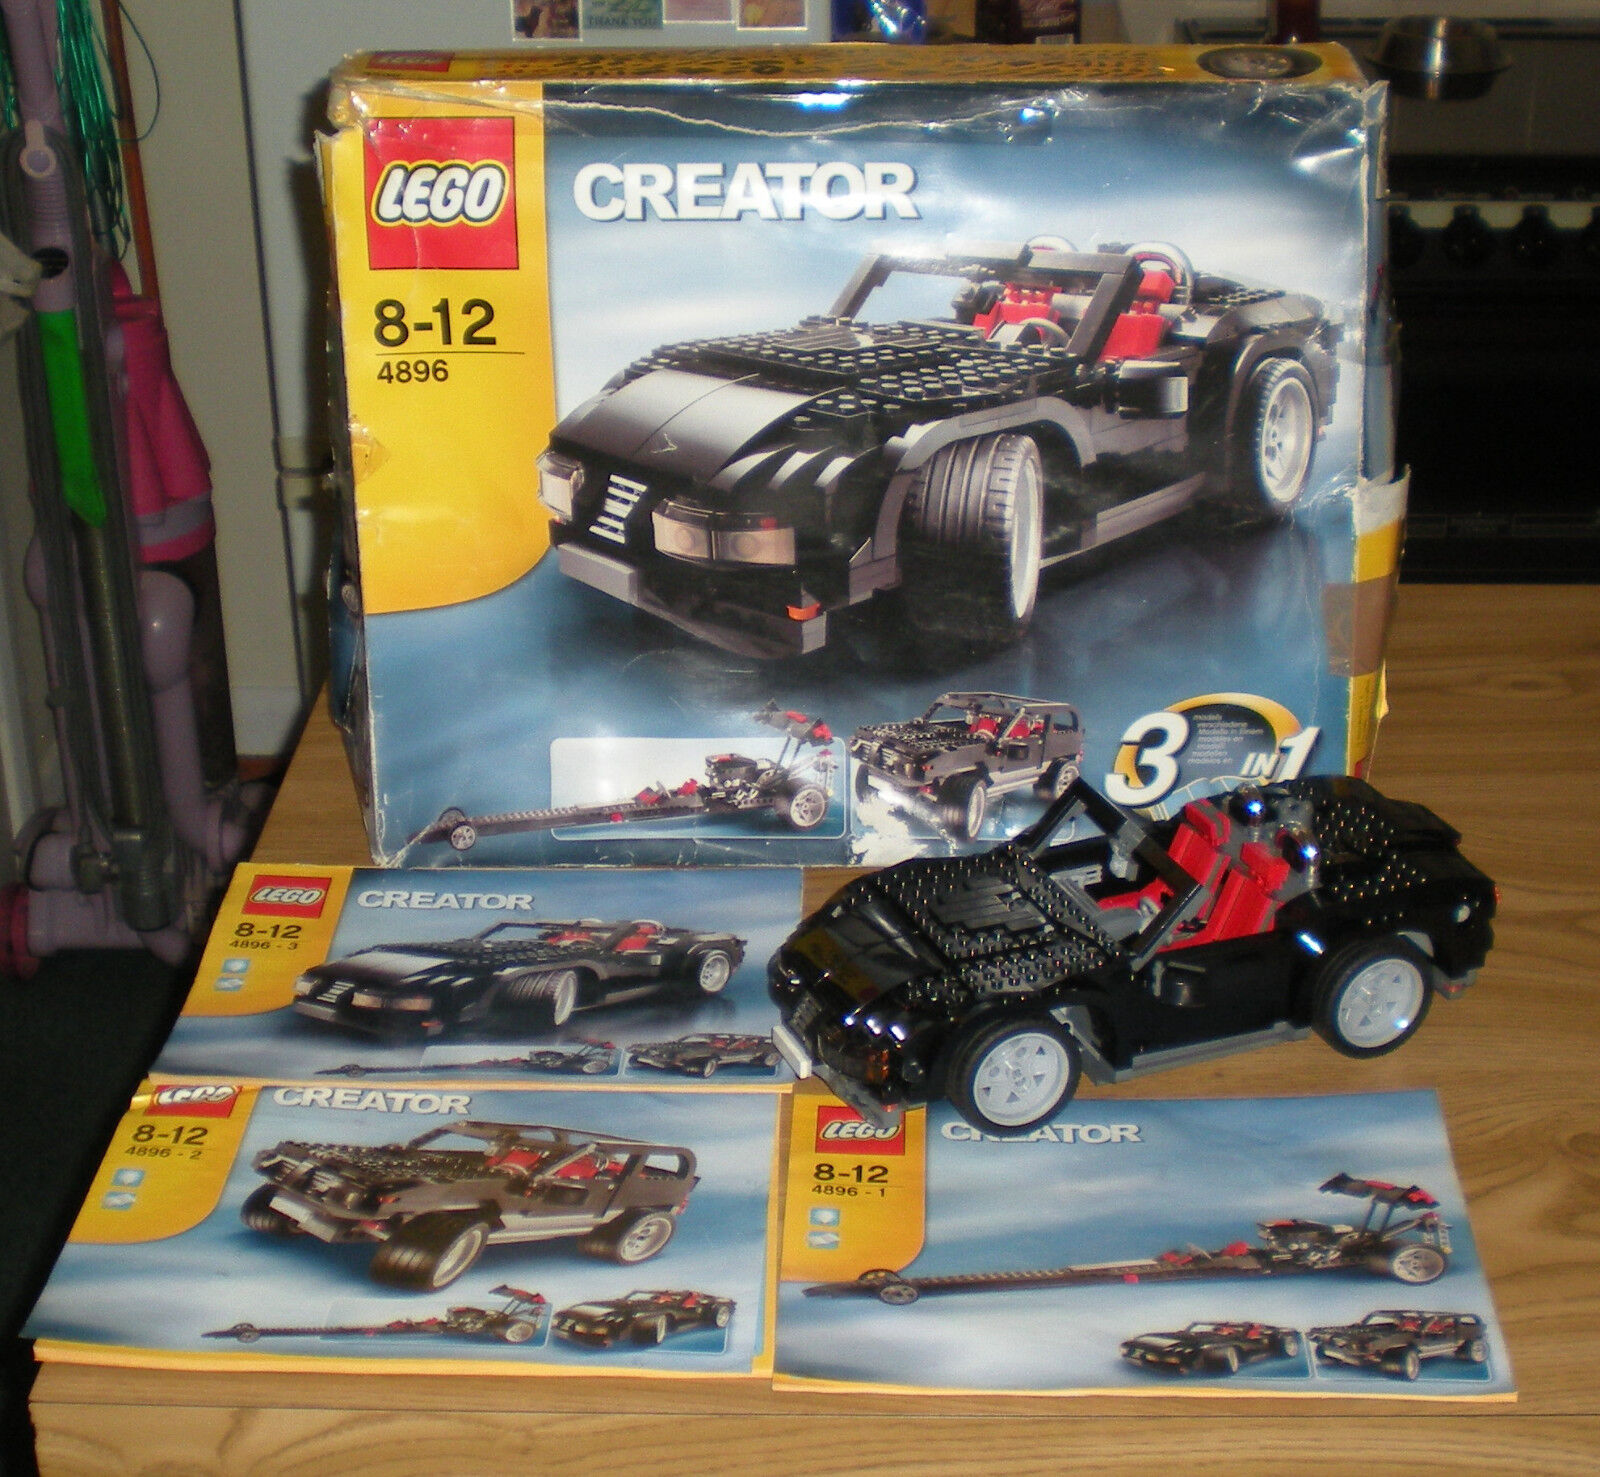 Lego Creator 4896 - Roaring Roadster - 3 in 1 set - boxed